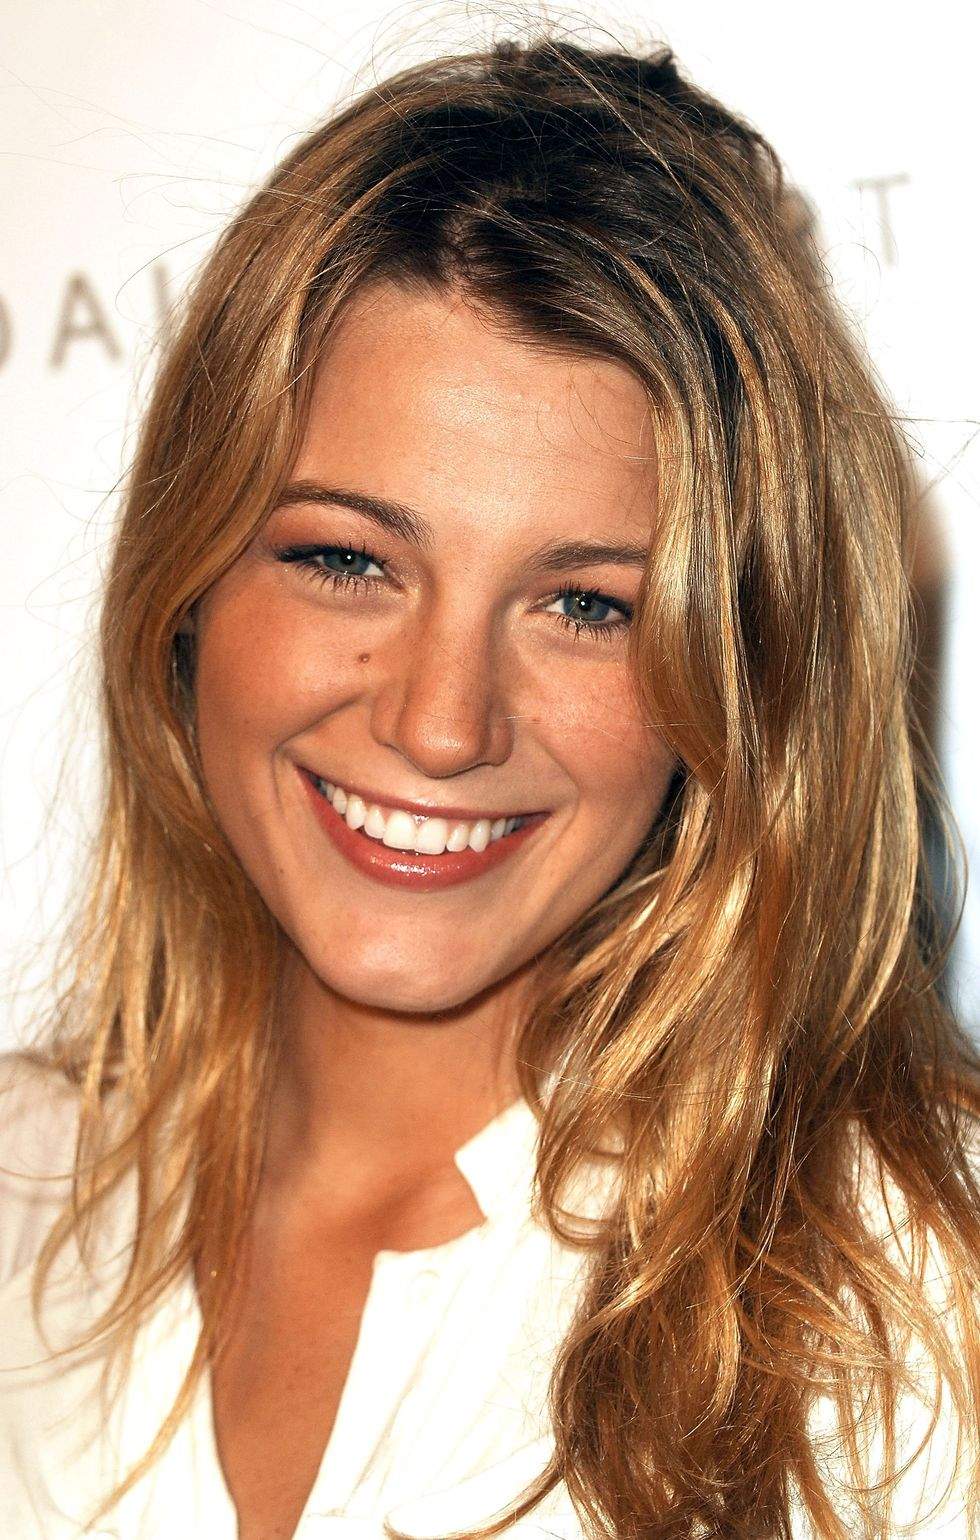 blake-lively-w-hotel-grand-opening-in-fort-lauderdale-01